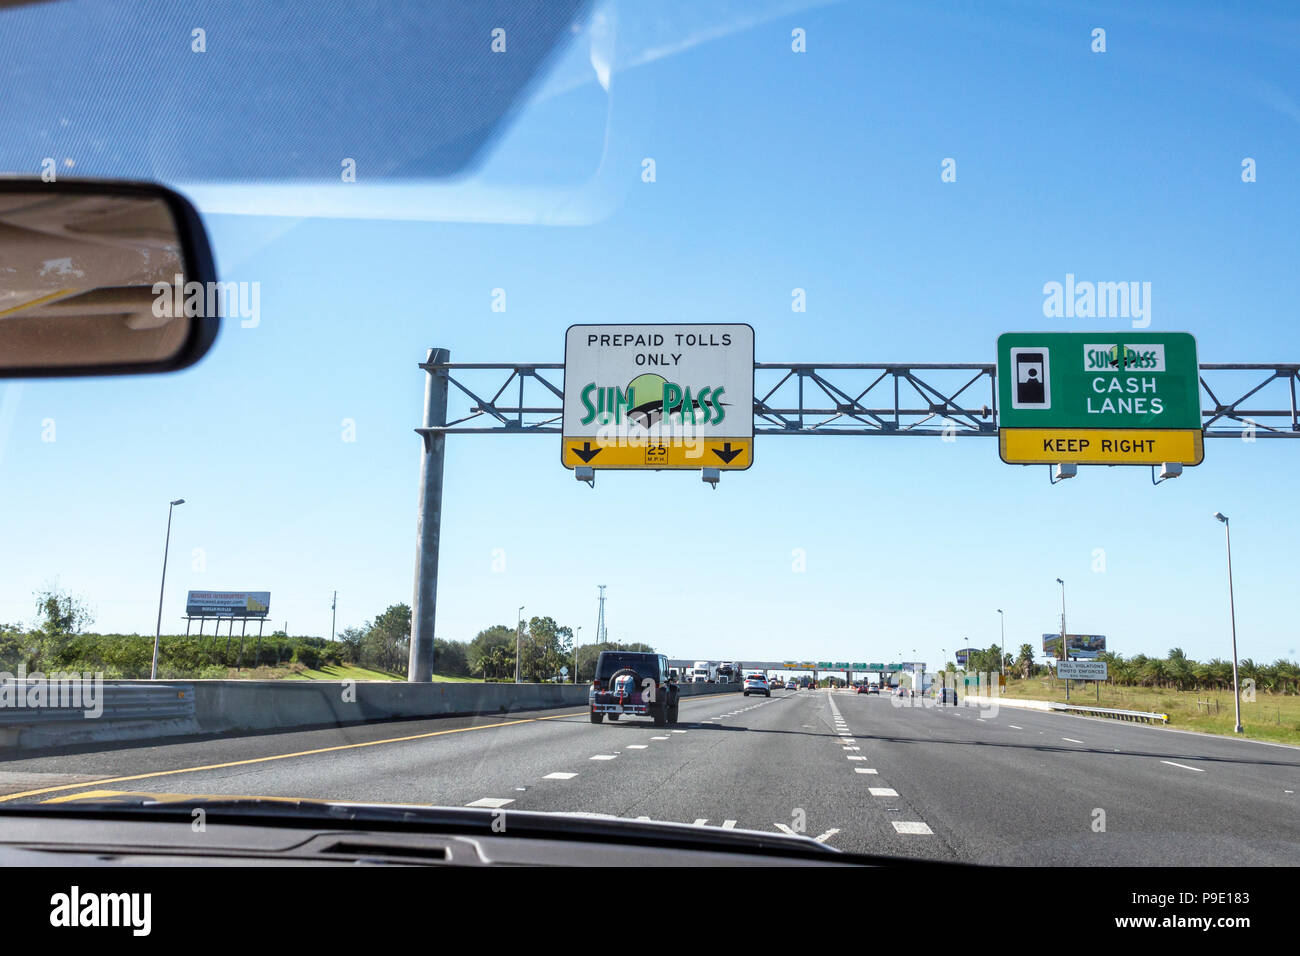 Florida Winter Park Florida Turnpike toll road plaza SunPass prepaid electronic toll tolls collection system highway traffic driving window windshield Stock Photo